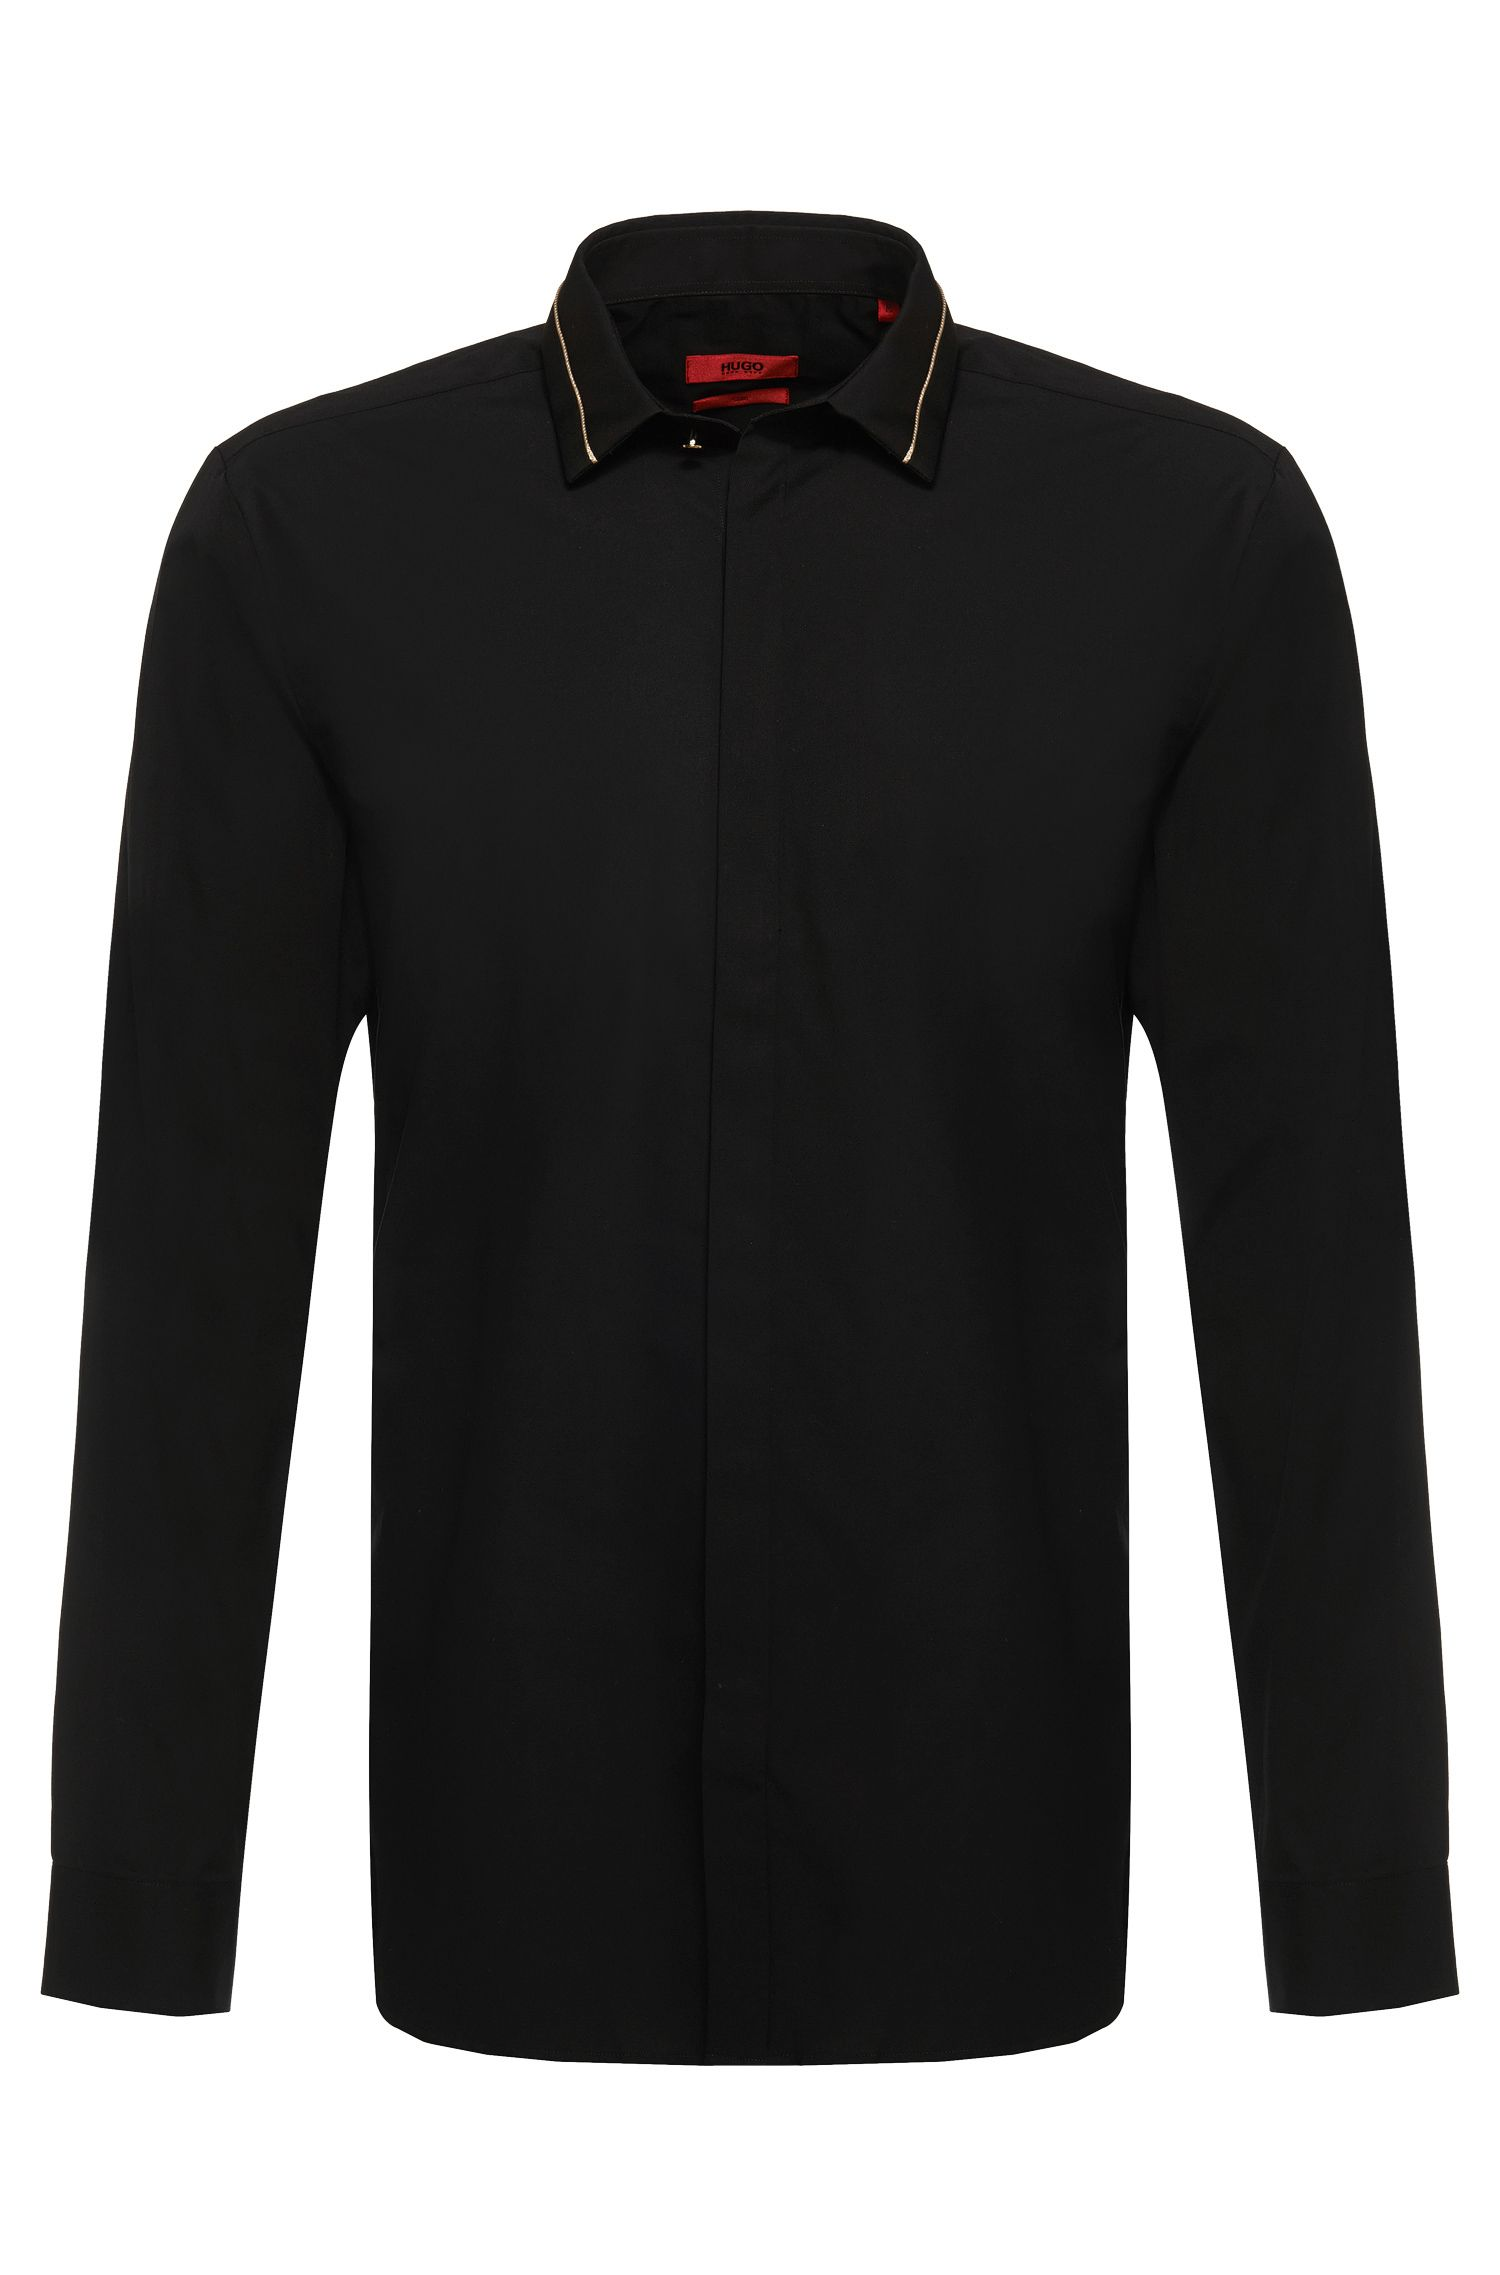 'Ems' | Slim Fit, Gold Piping Button Down Shirt